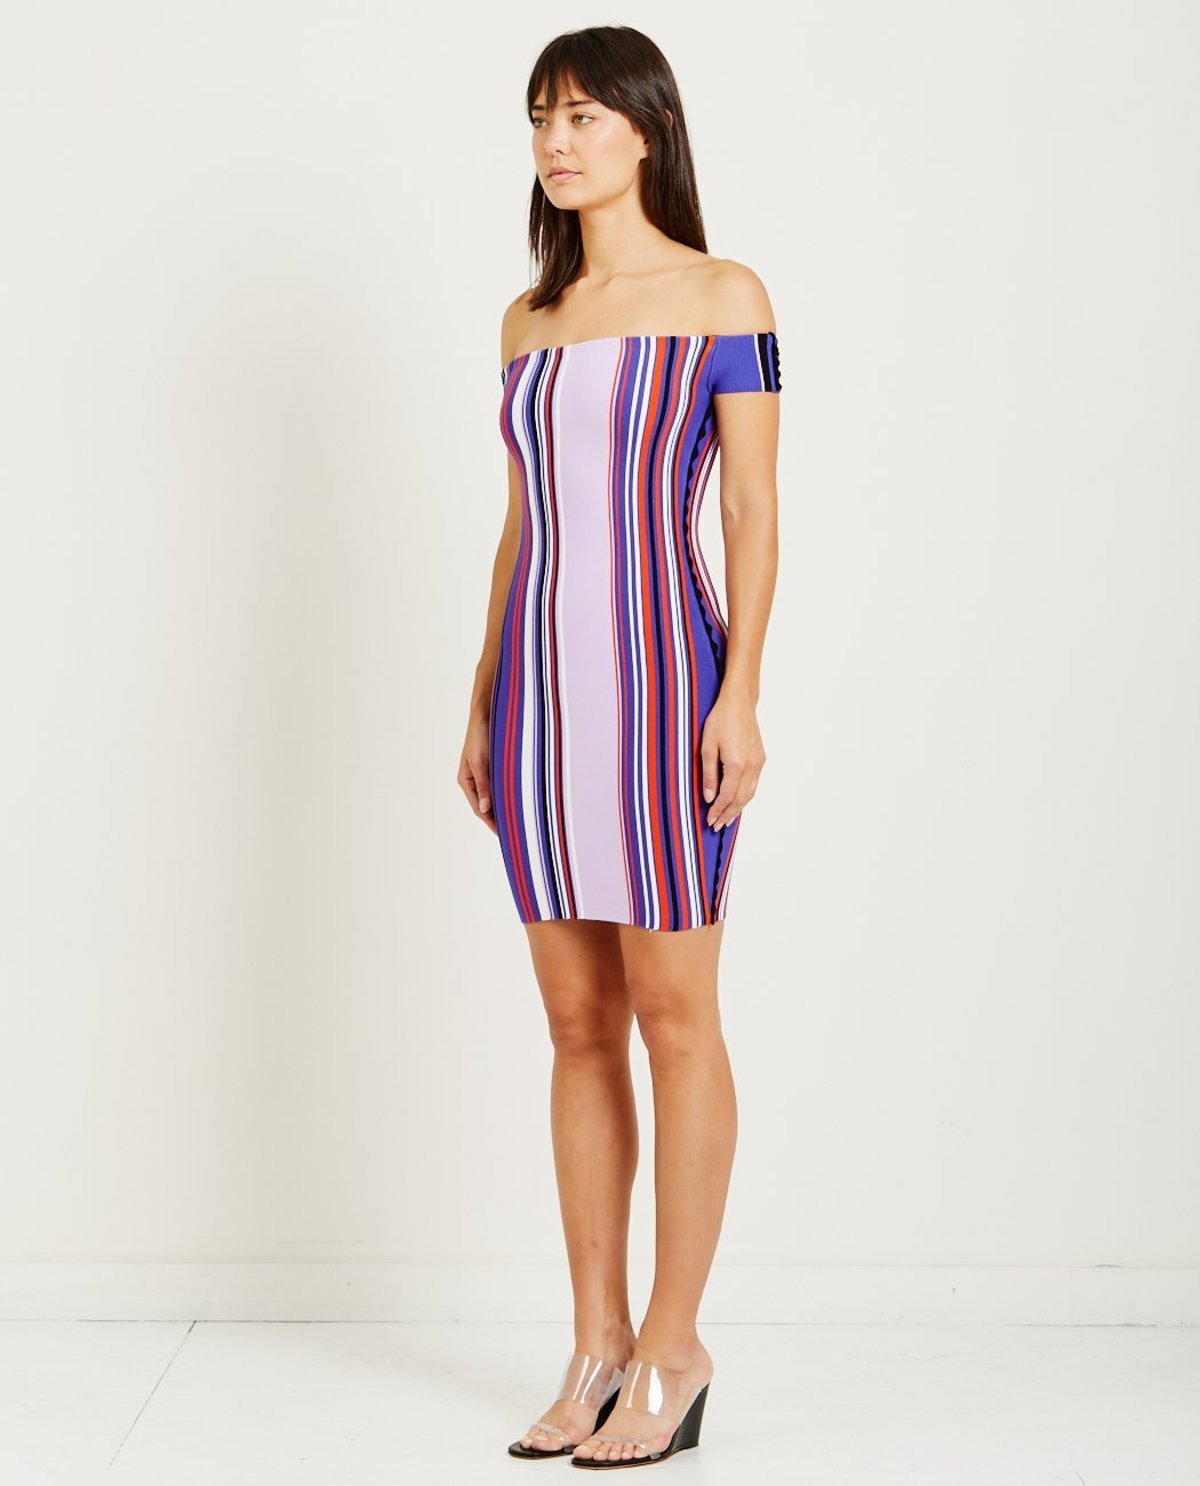 fcc375bb2e7b Opening Ceremony STRIPED OFF THE SHOULDER DRESS - PURPLE